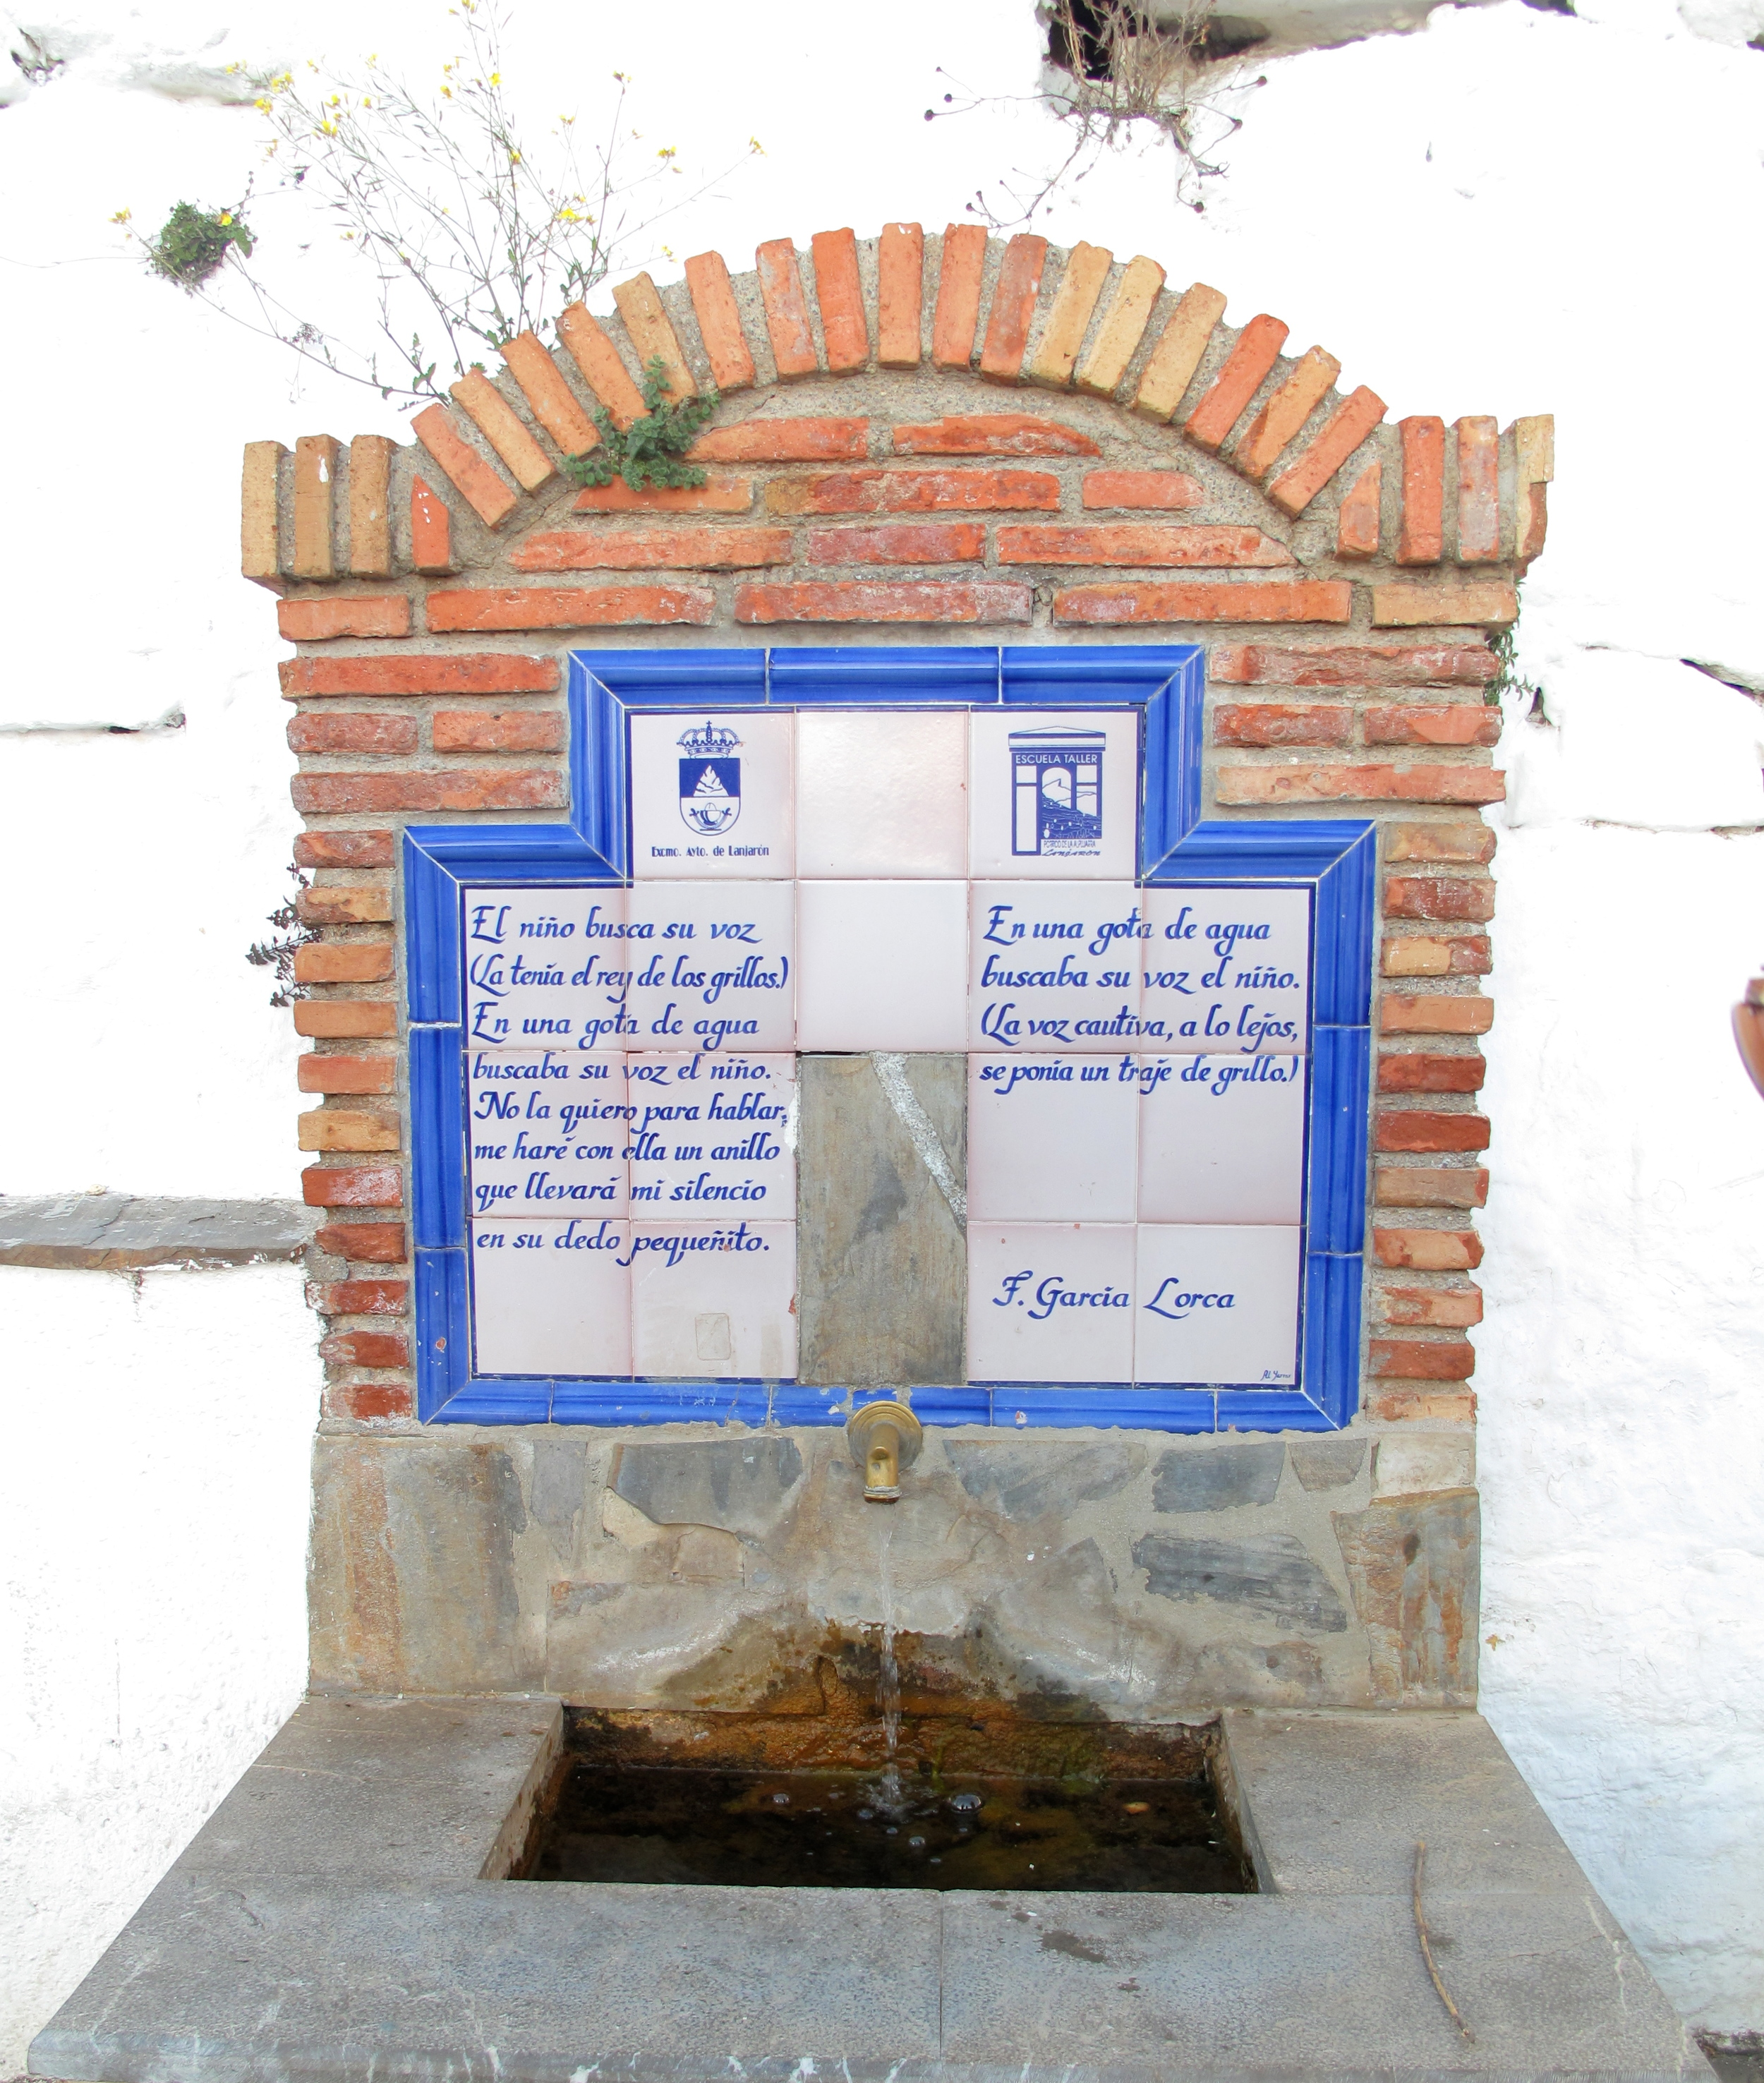 Fountain of healing in the Spanish mountains